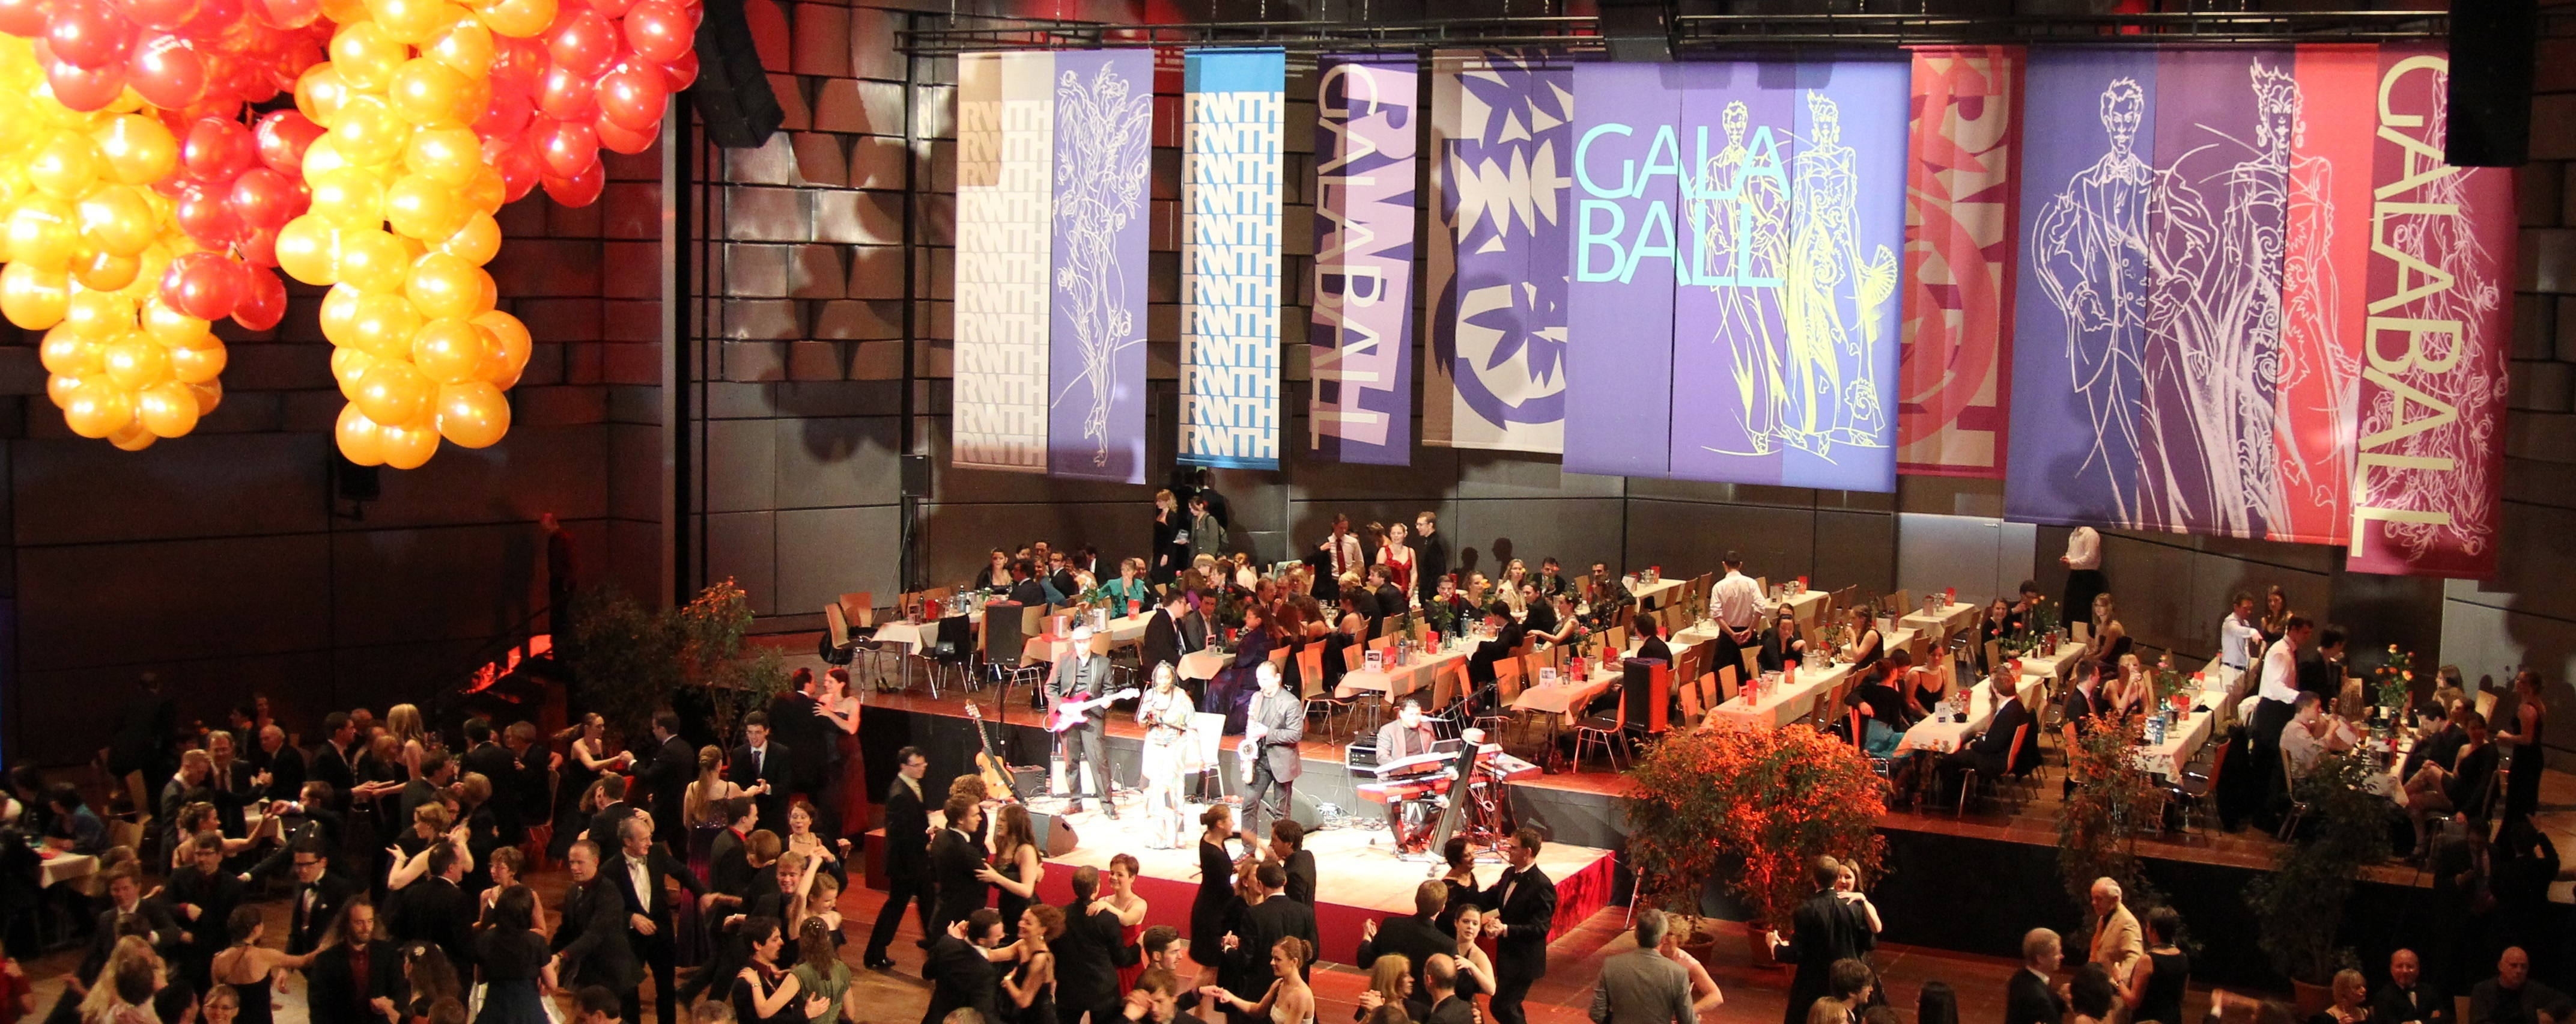 Stage and dance floor at the Gala Ball